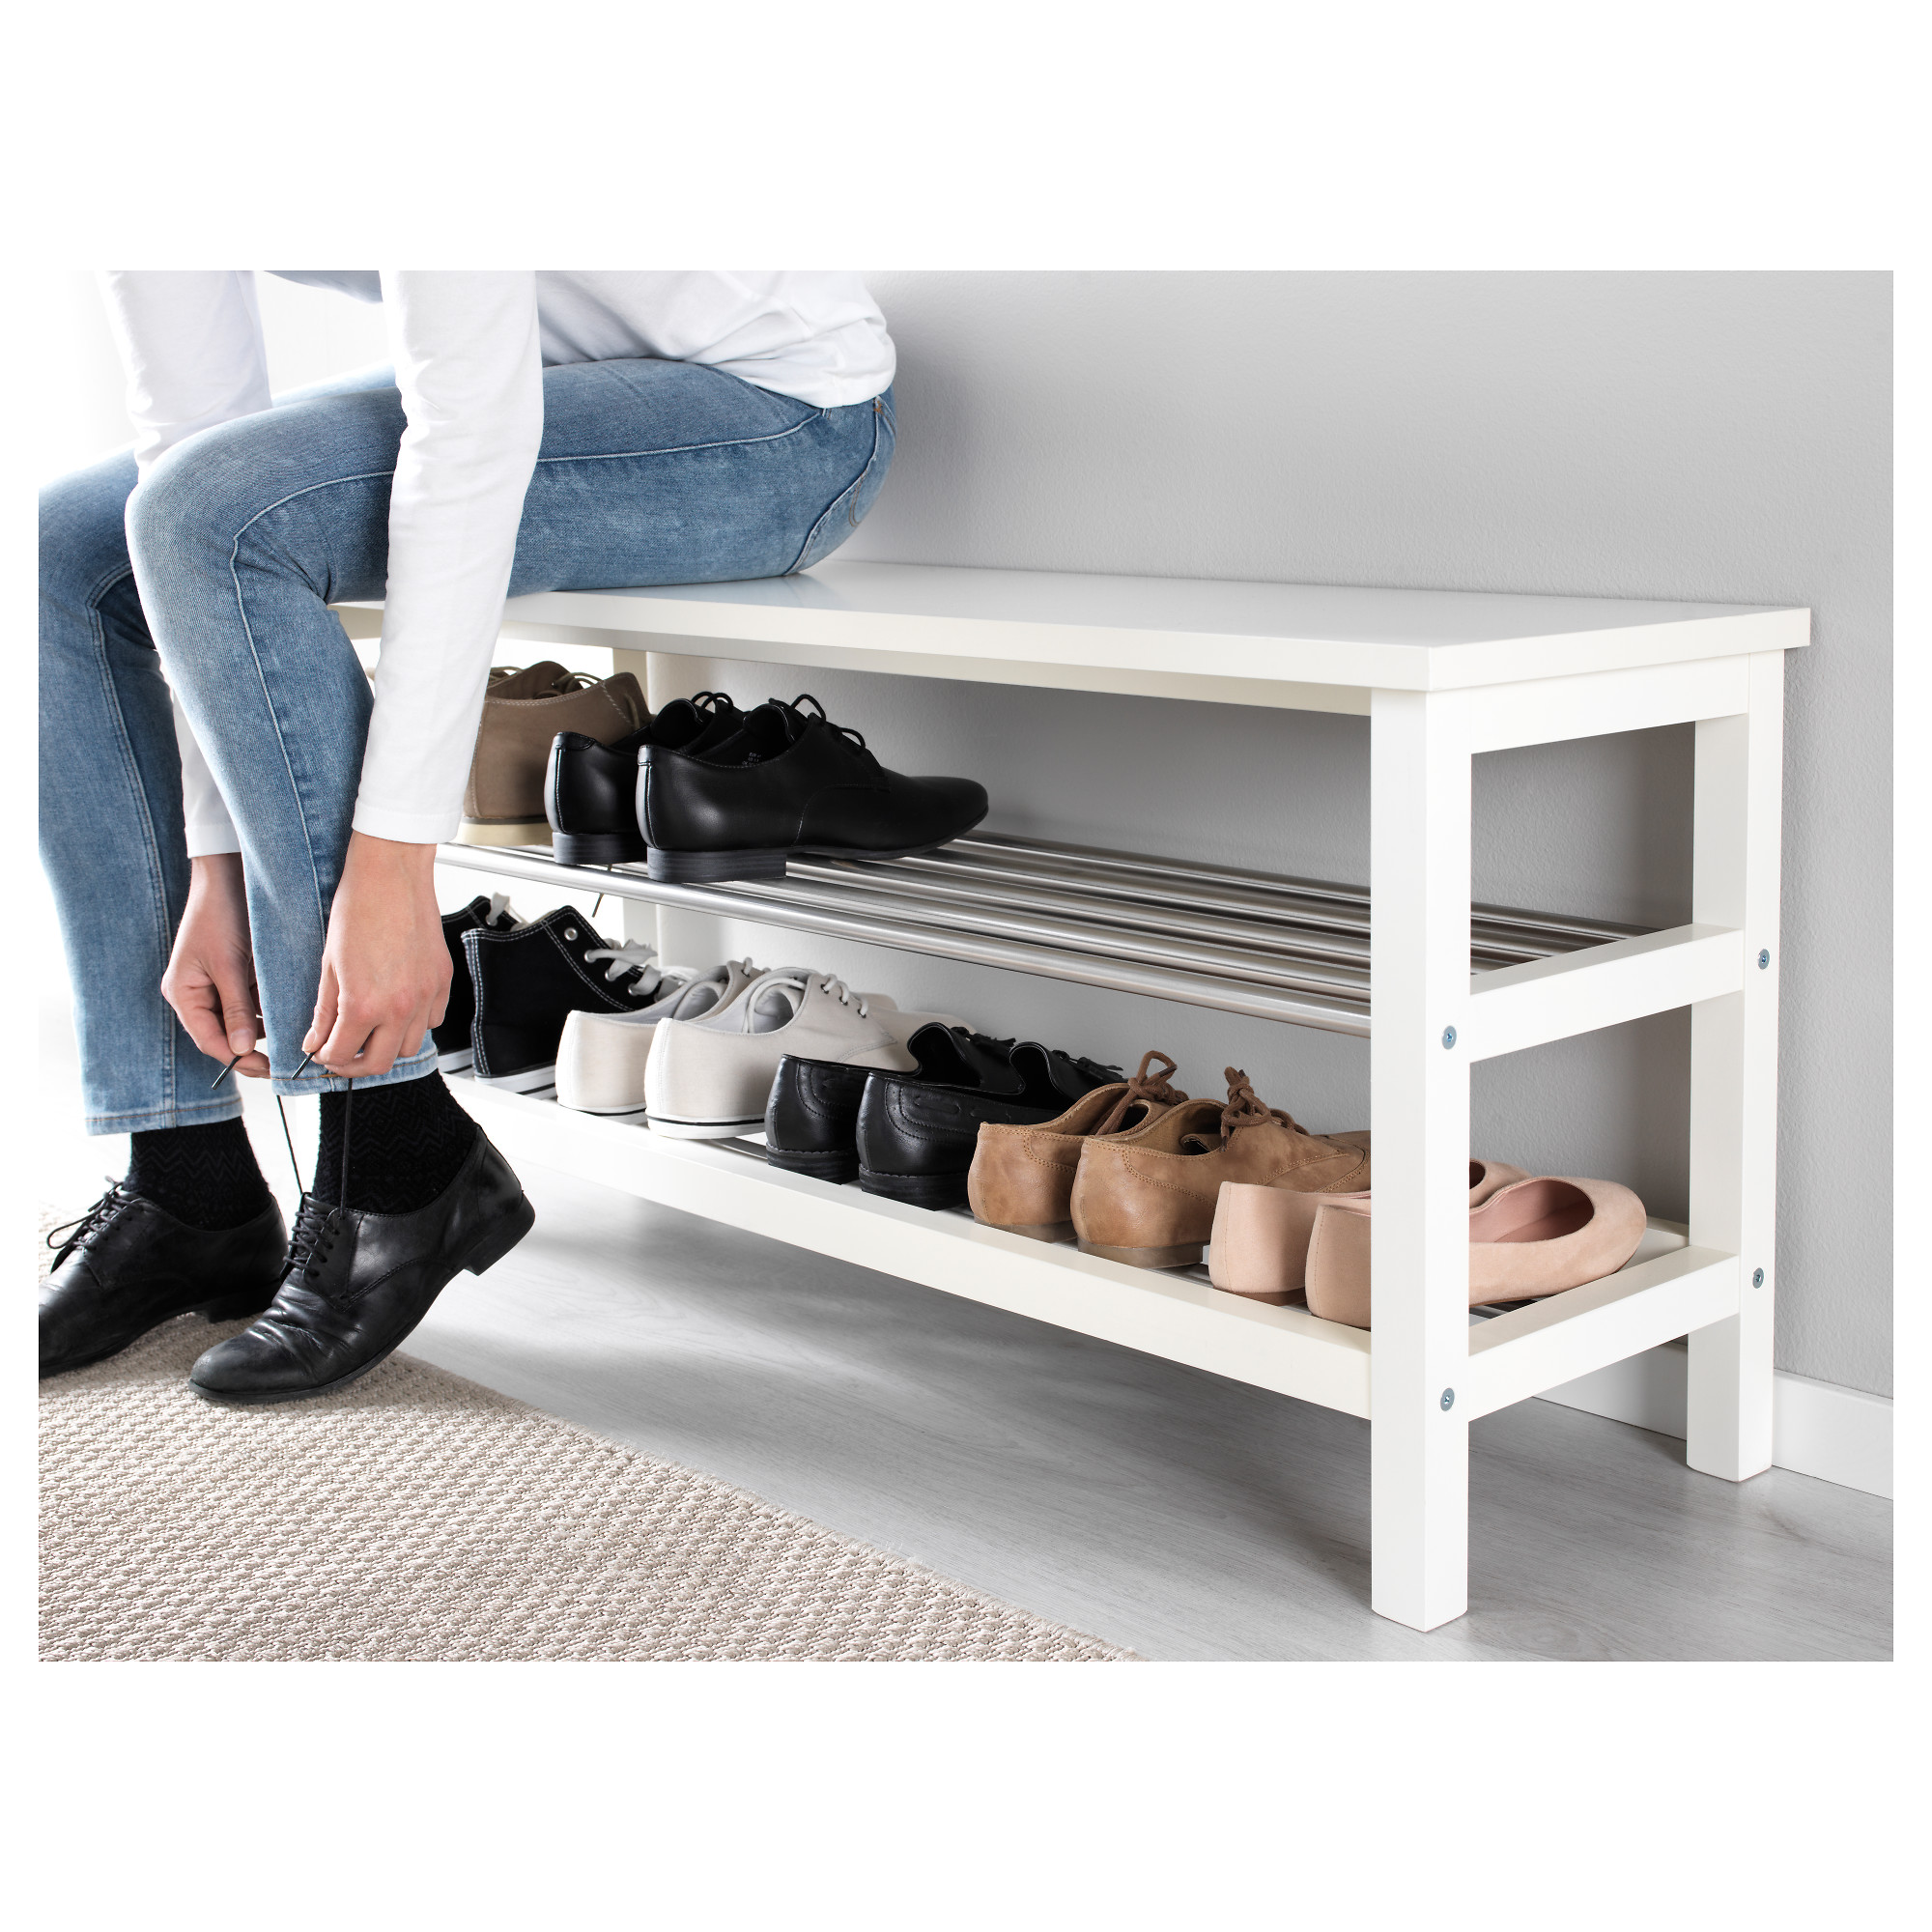 Ikea Shoe Storage Part - 17: TJUSIG Bench With Shoe Storage - Black - IKEA